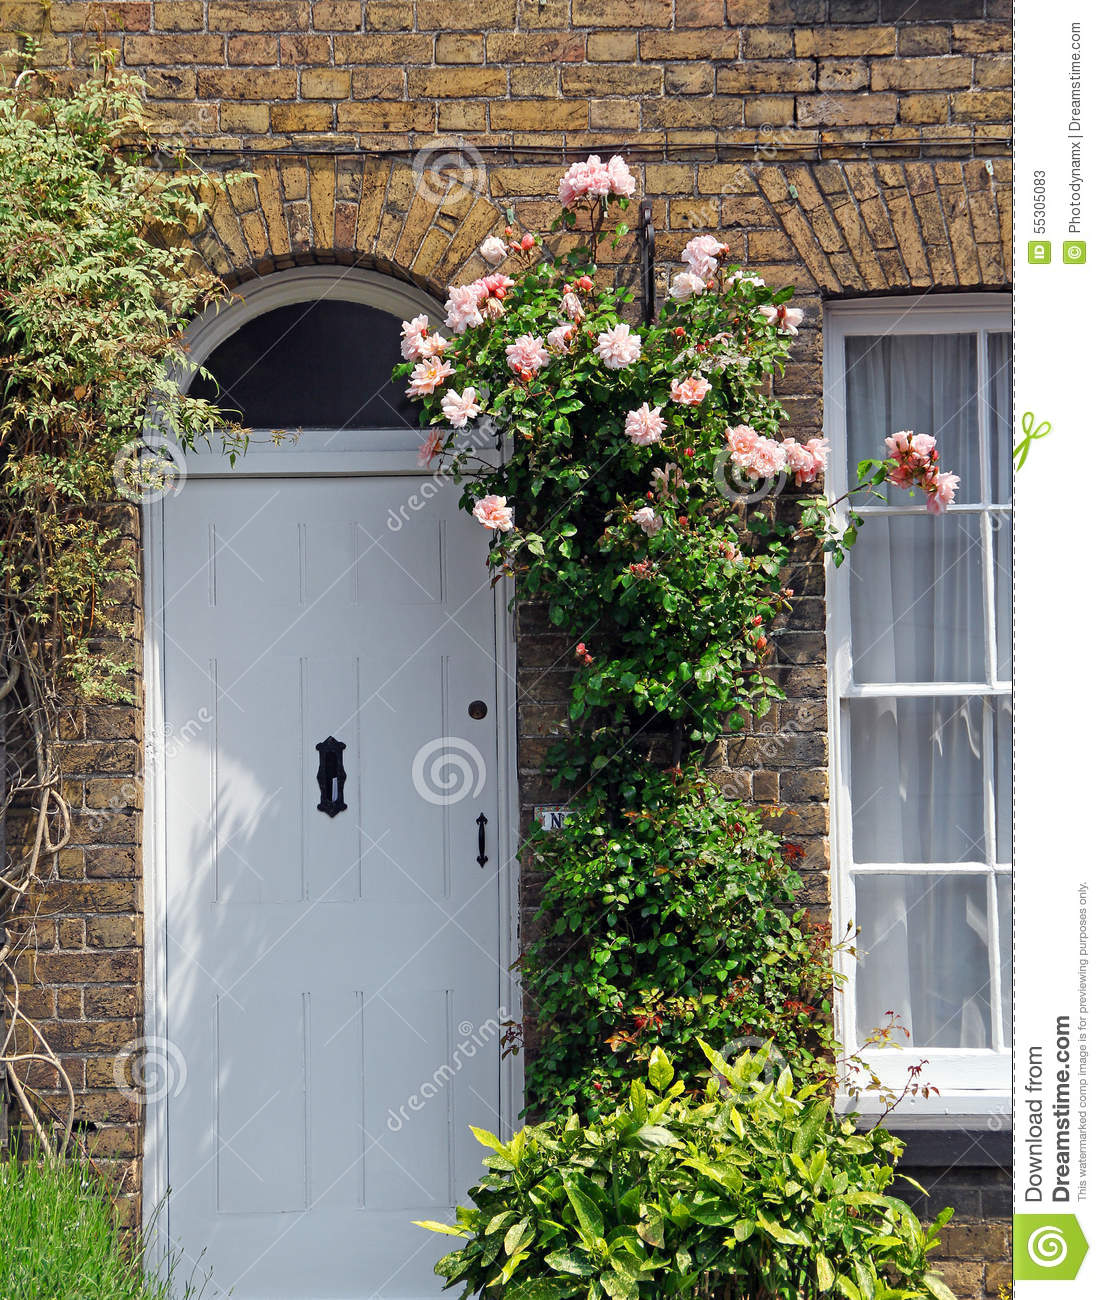 Country cottage door roses & Country Cottage Door Roses Stock Photo - Image: 55305083 Pezcame.Com